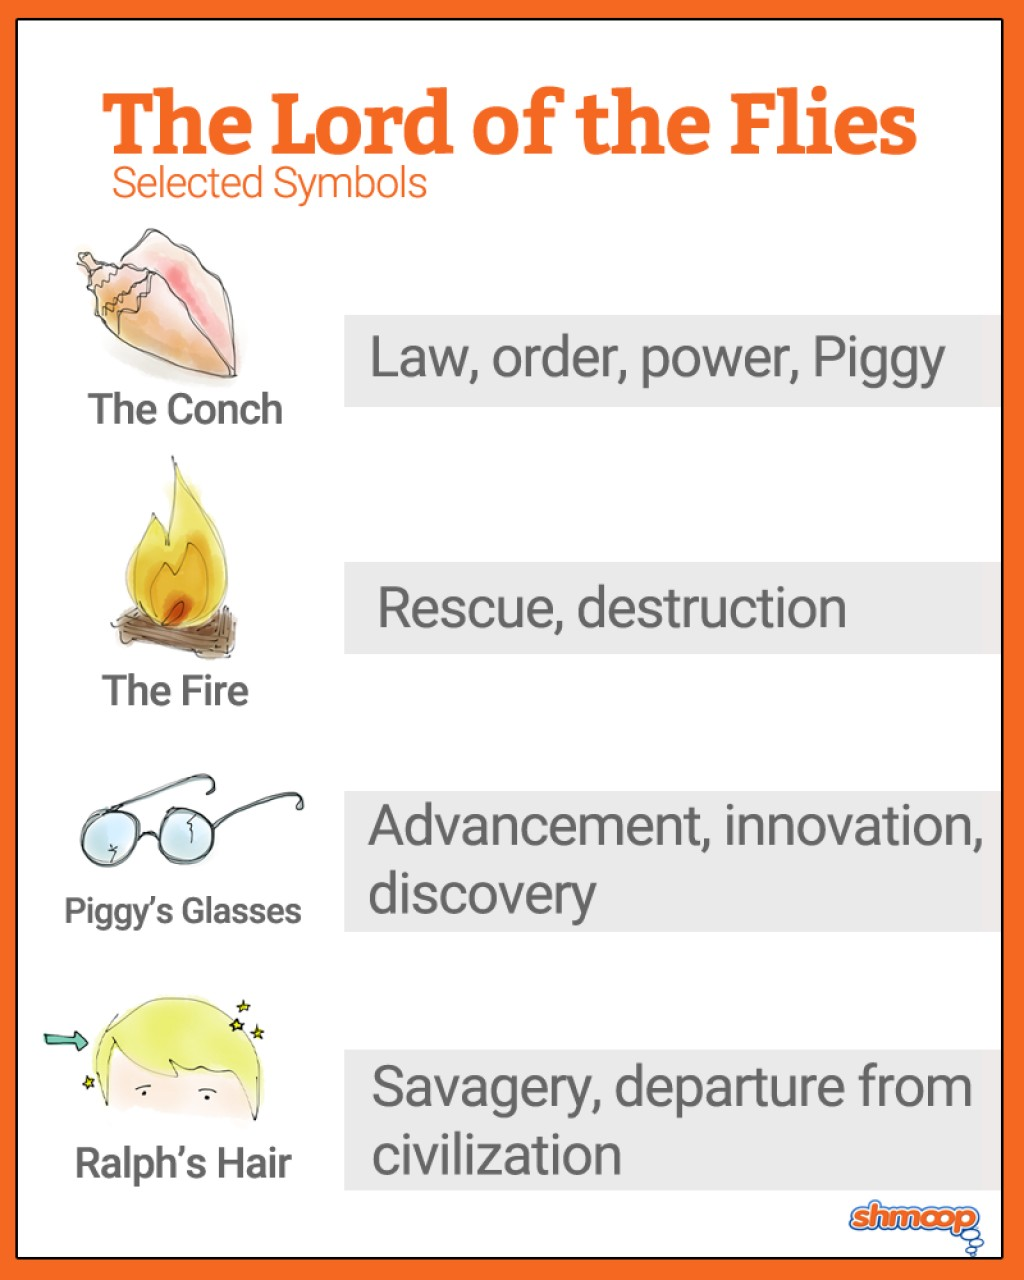 011 Lord Of The Flies Symbolism Essay Unusual Beast Introduction Prompt Large